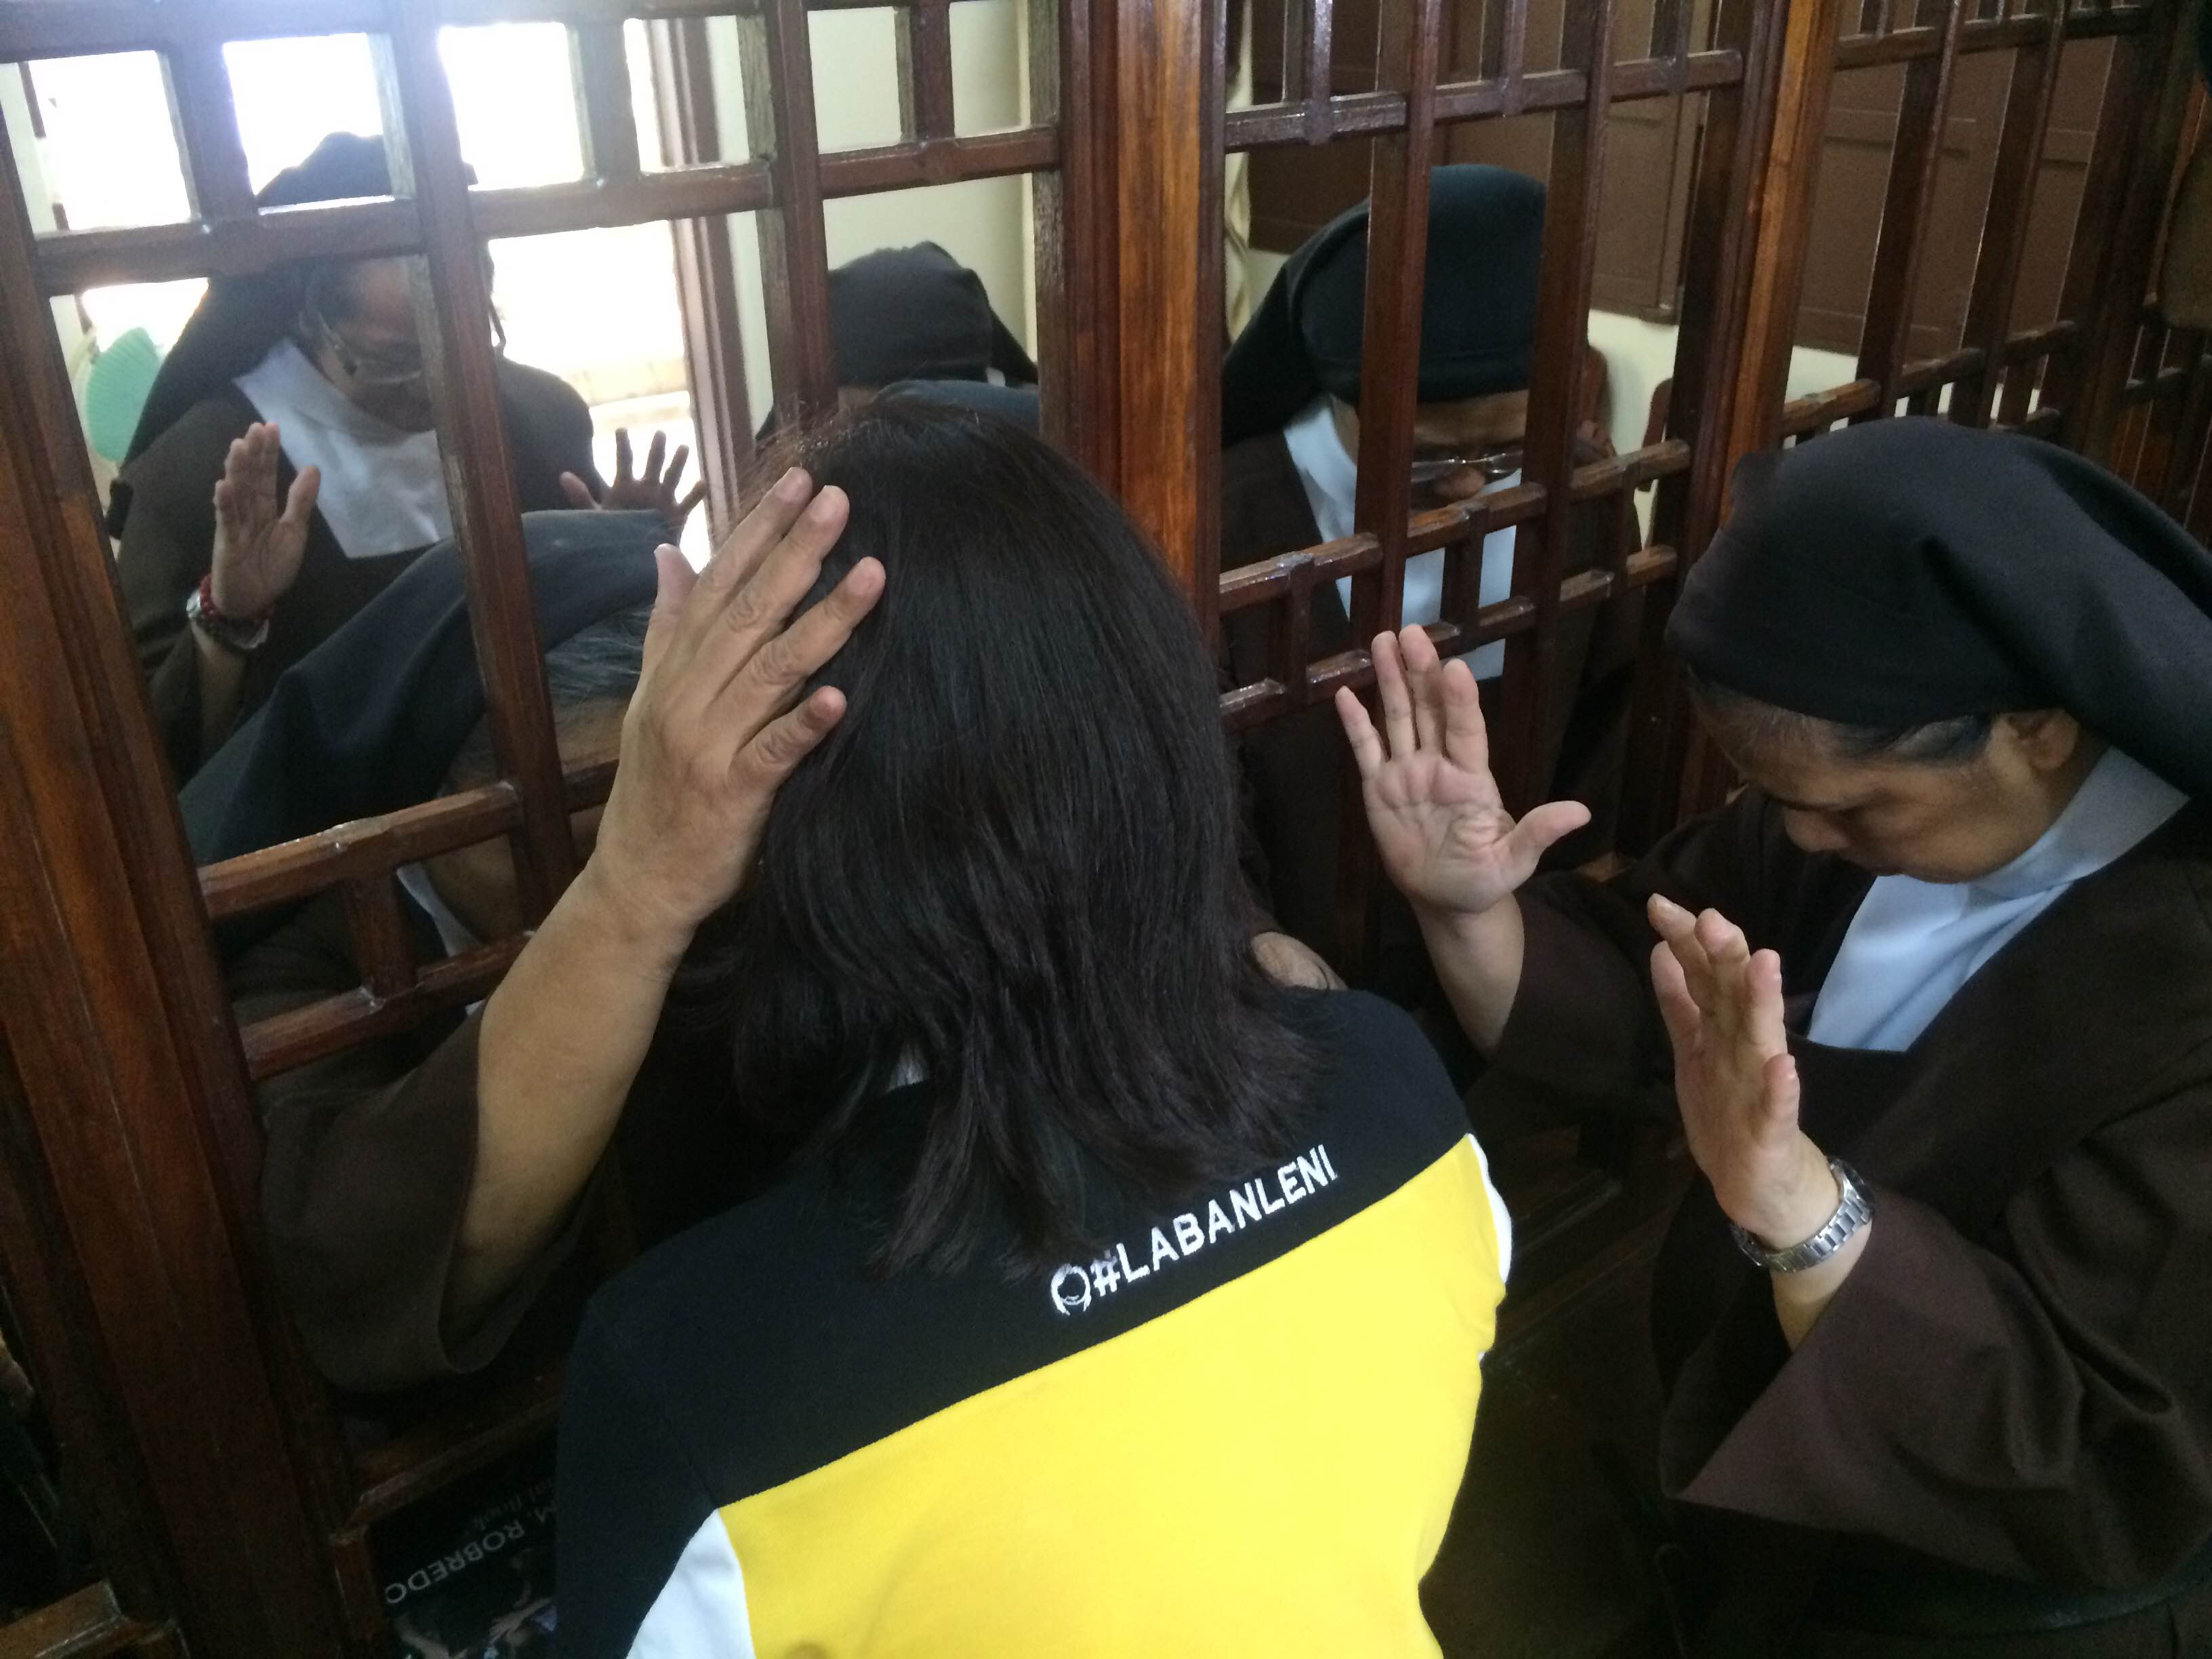 BLESSING. LP vice presidential candidate Leni Robredo is prayed over by Carmelite nuns in Laoag City on March 19, 2016. Photo by Bea Cupin/Rappler